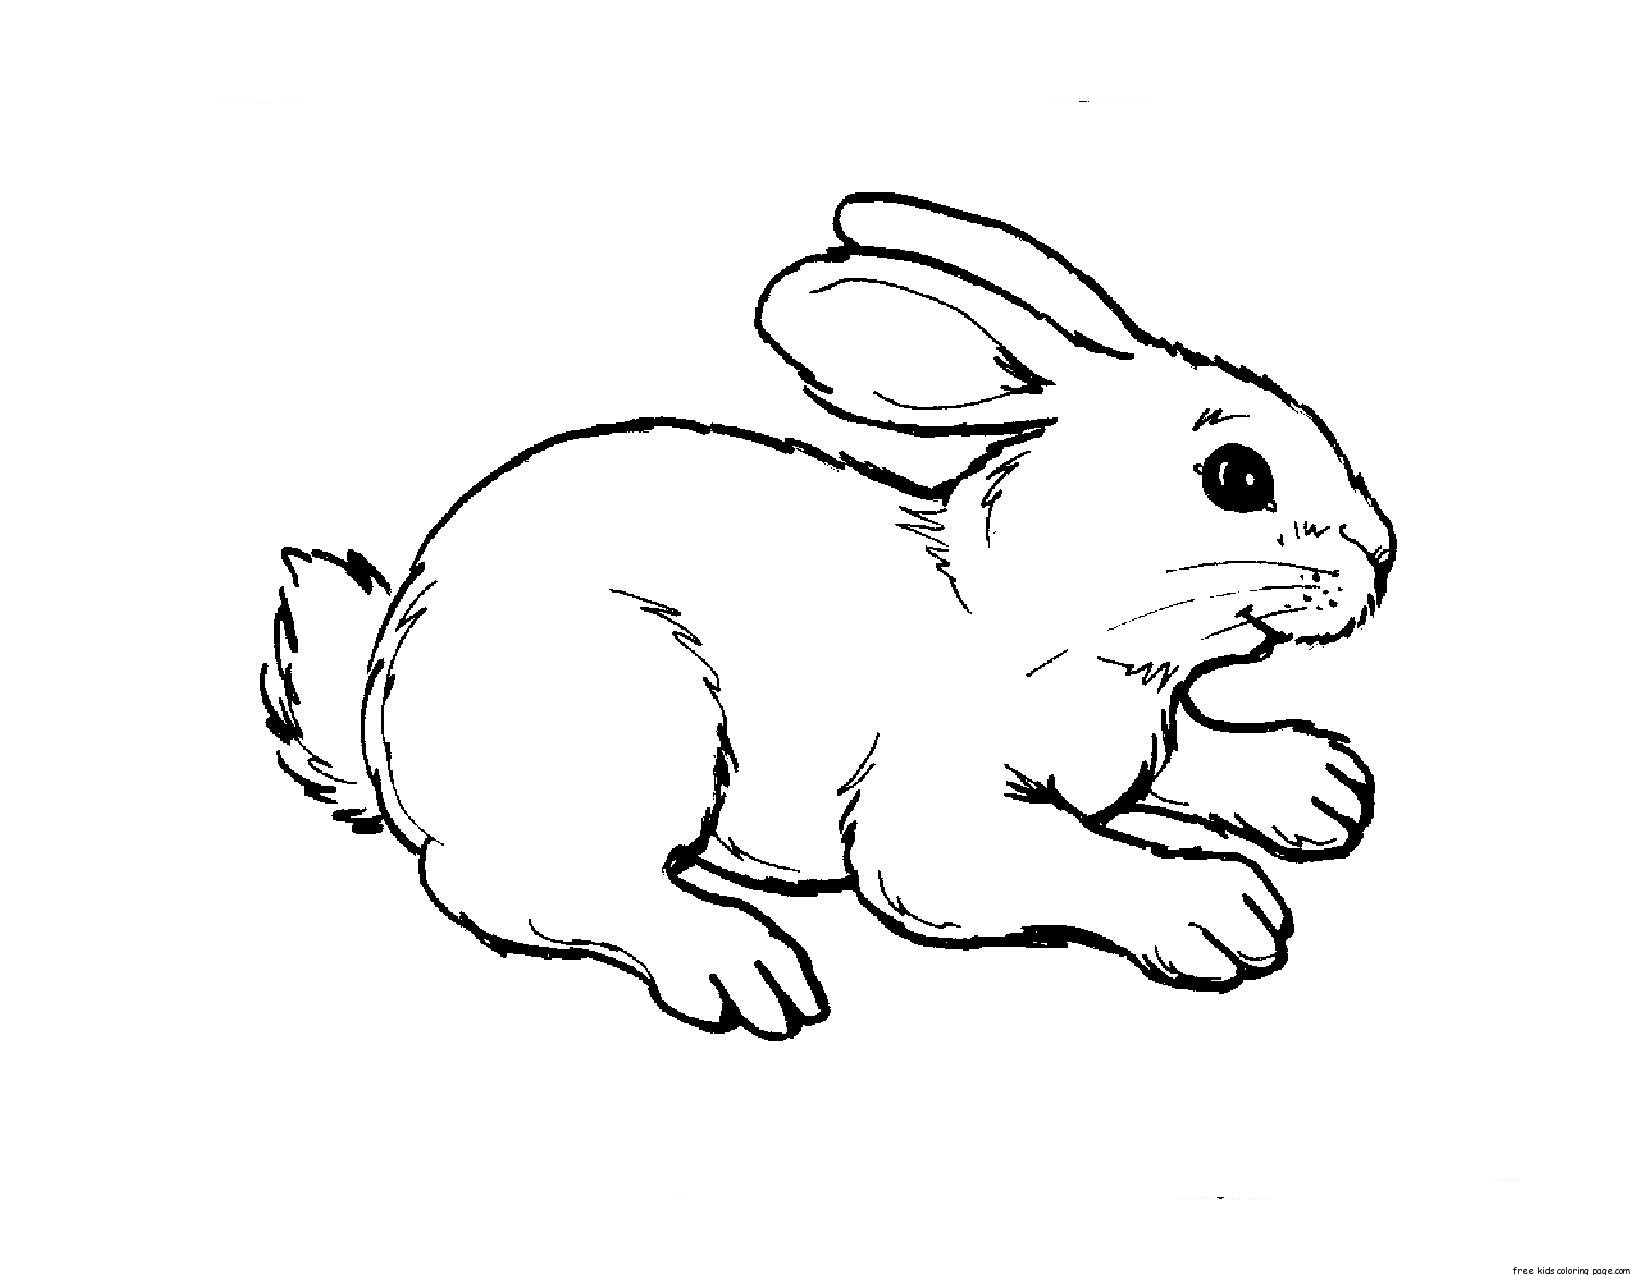 free printable animal colouring pages baby animal coloring pages realistic coloring pages printable animal colouring pages free